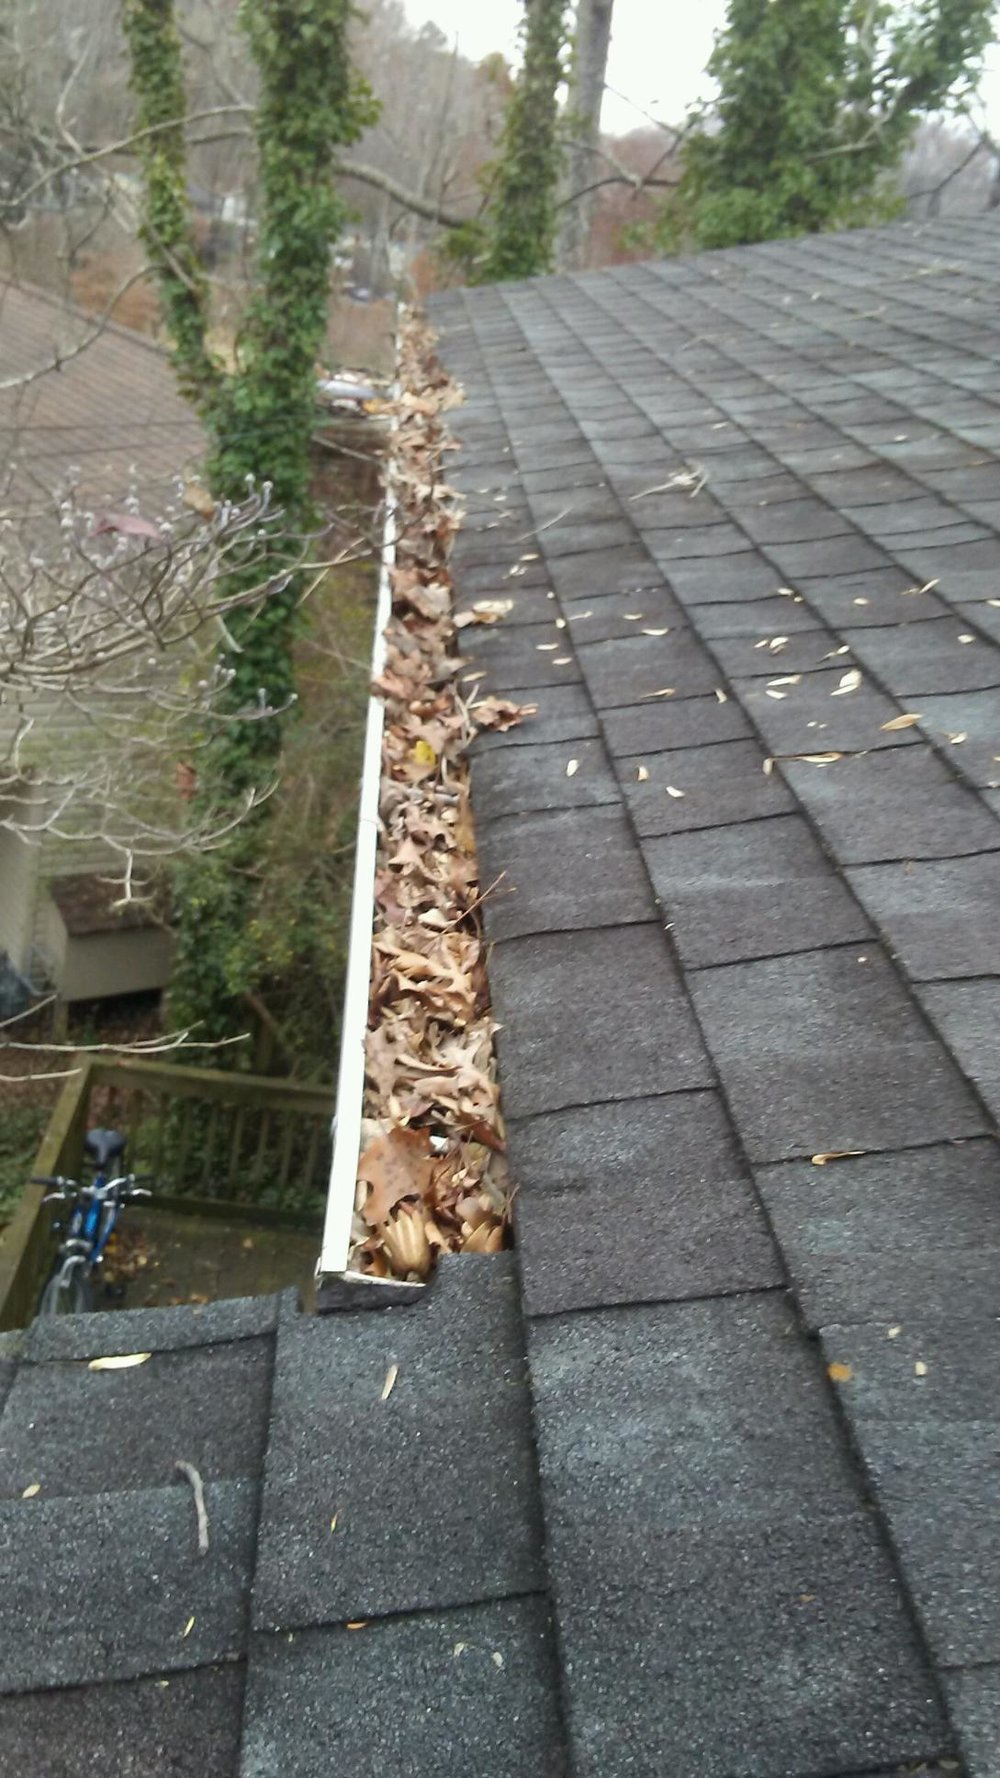 Image from the roof of a clogged gutter full of debris and leaves in Charlottesville